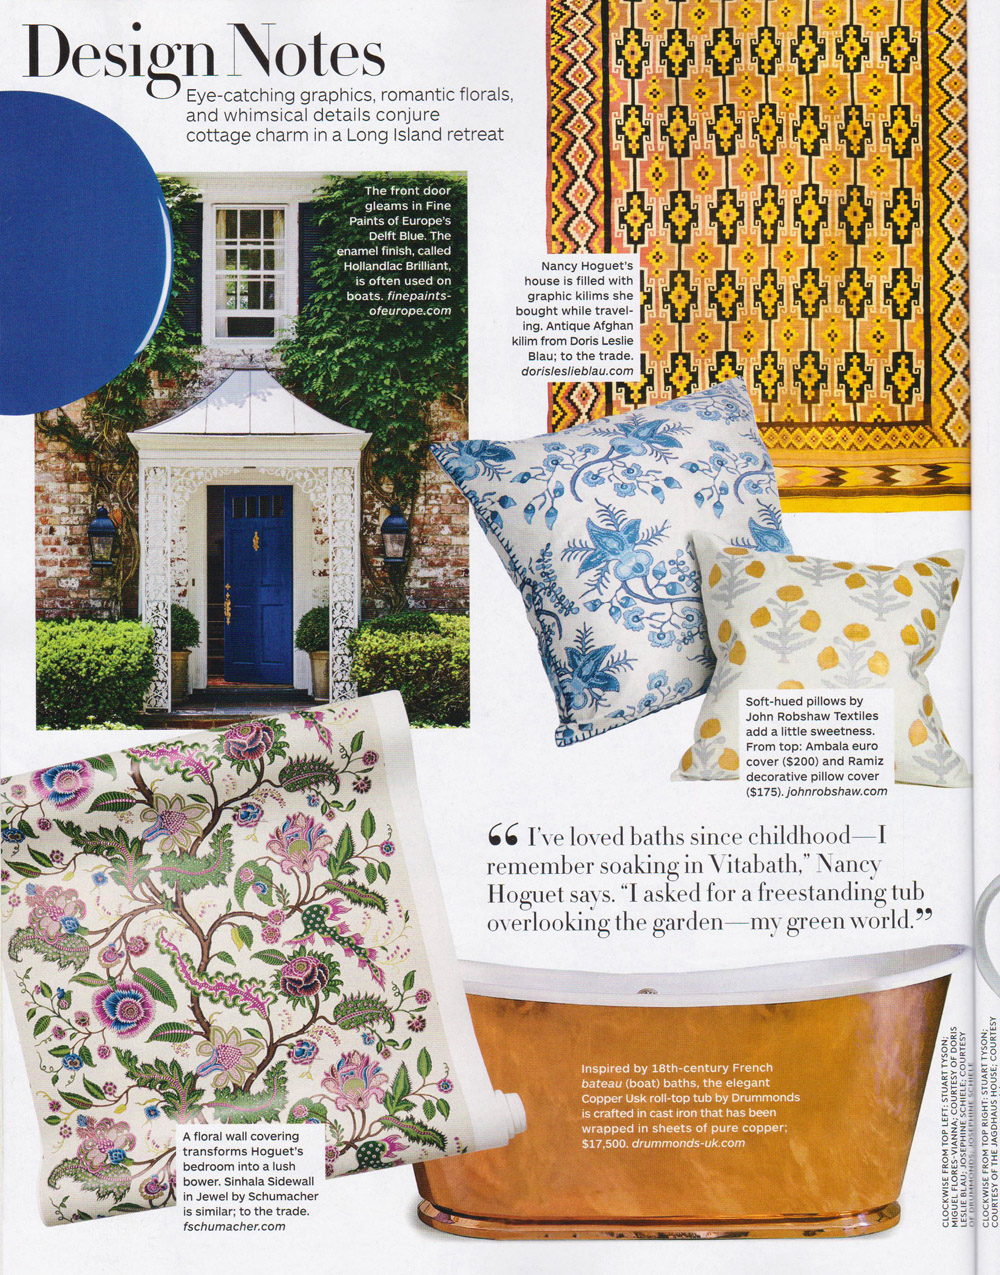 Reprinted from Architectural Digest, August 2016